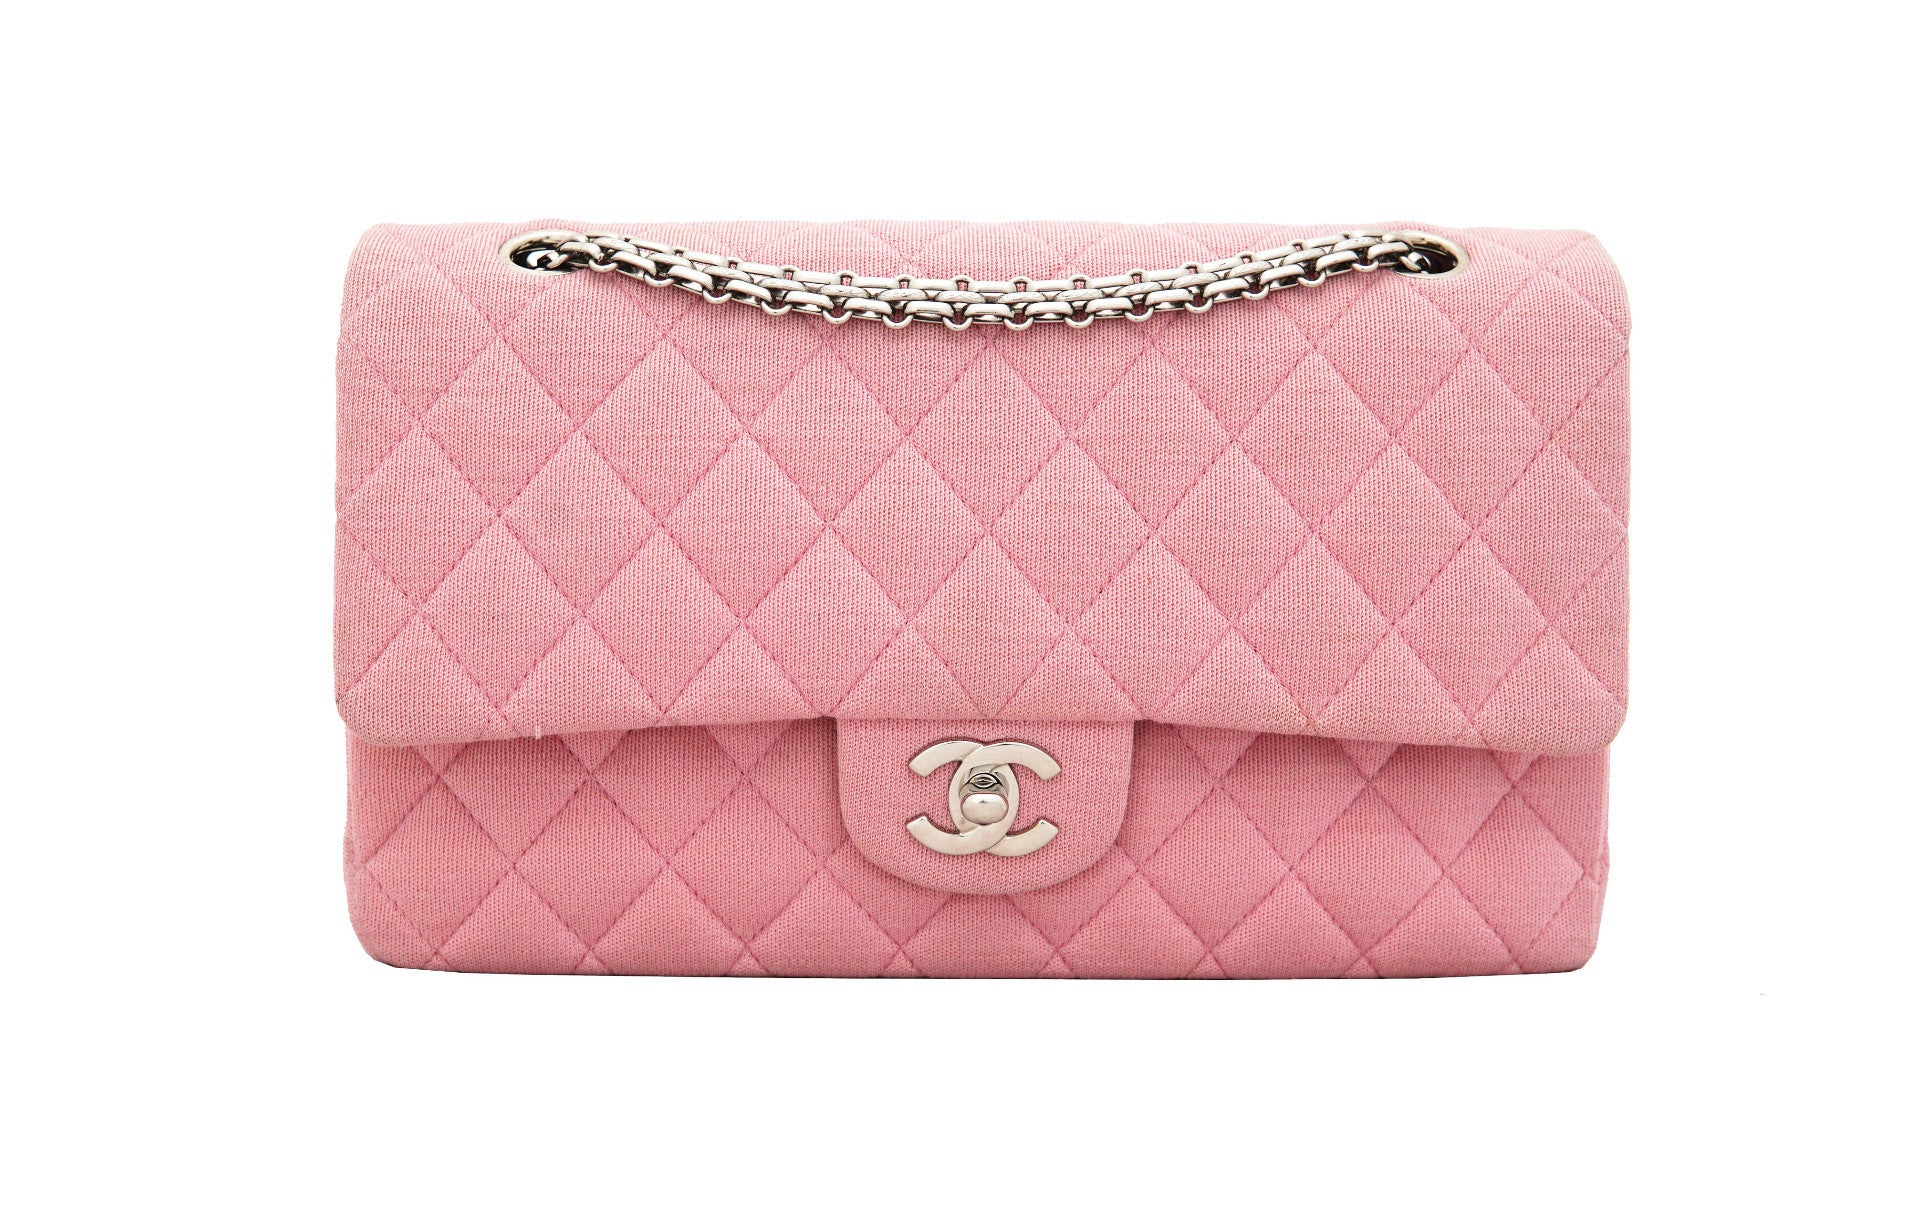 be2c87f94eac Vintage Chanel 2.55 bag jersey pink · CHANEL VINTAGE 2.55 BAG - Classic  Quilted ...